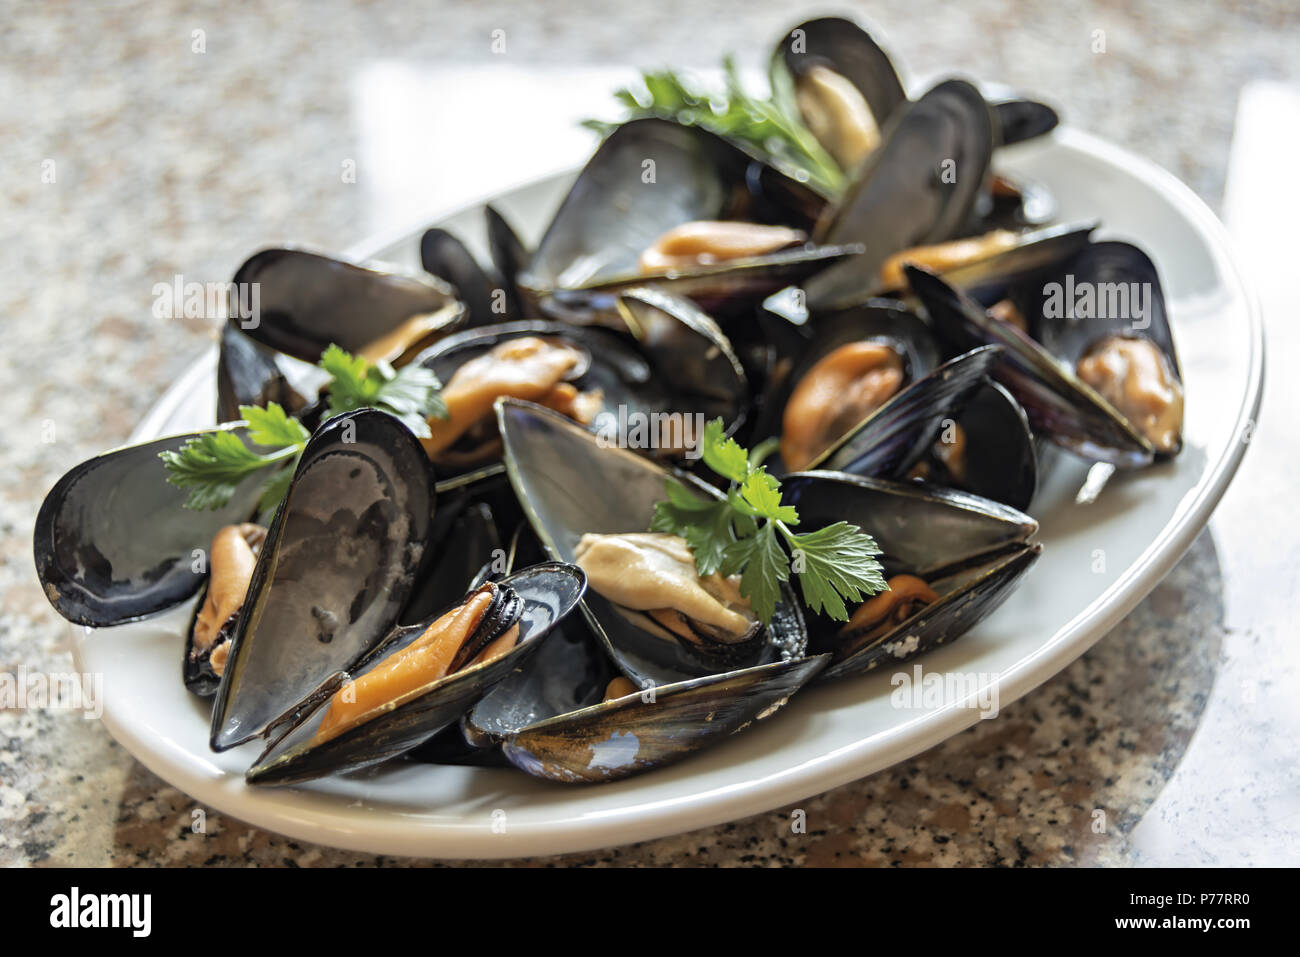 Mussels 12 - Stock Image